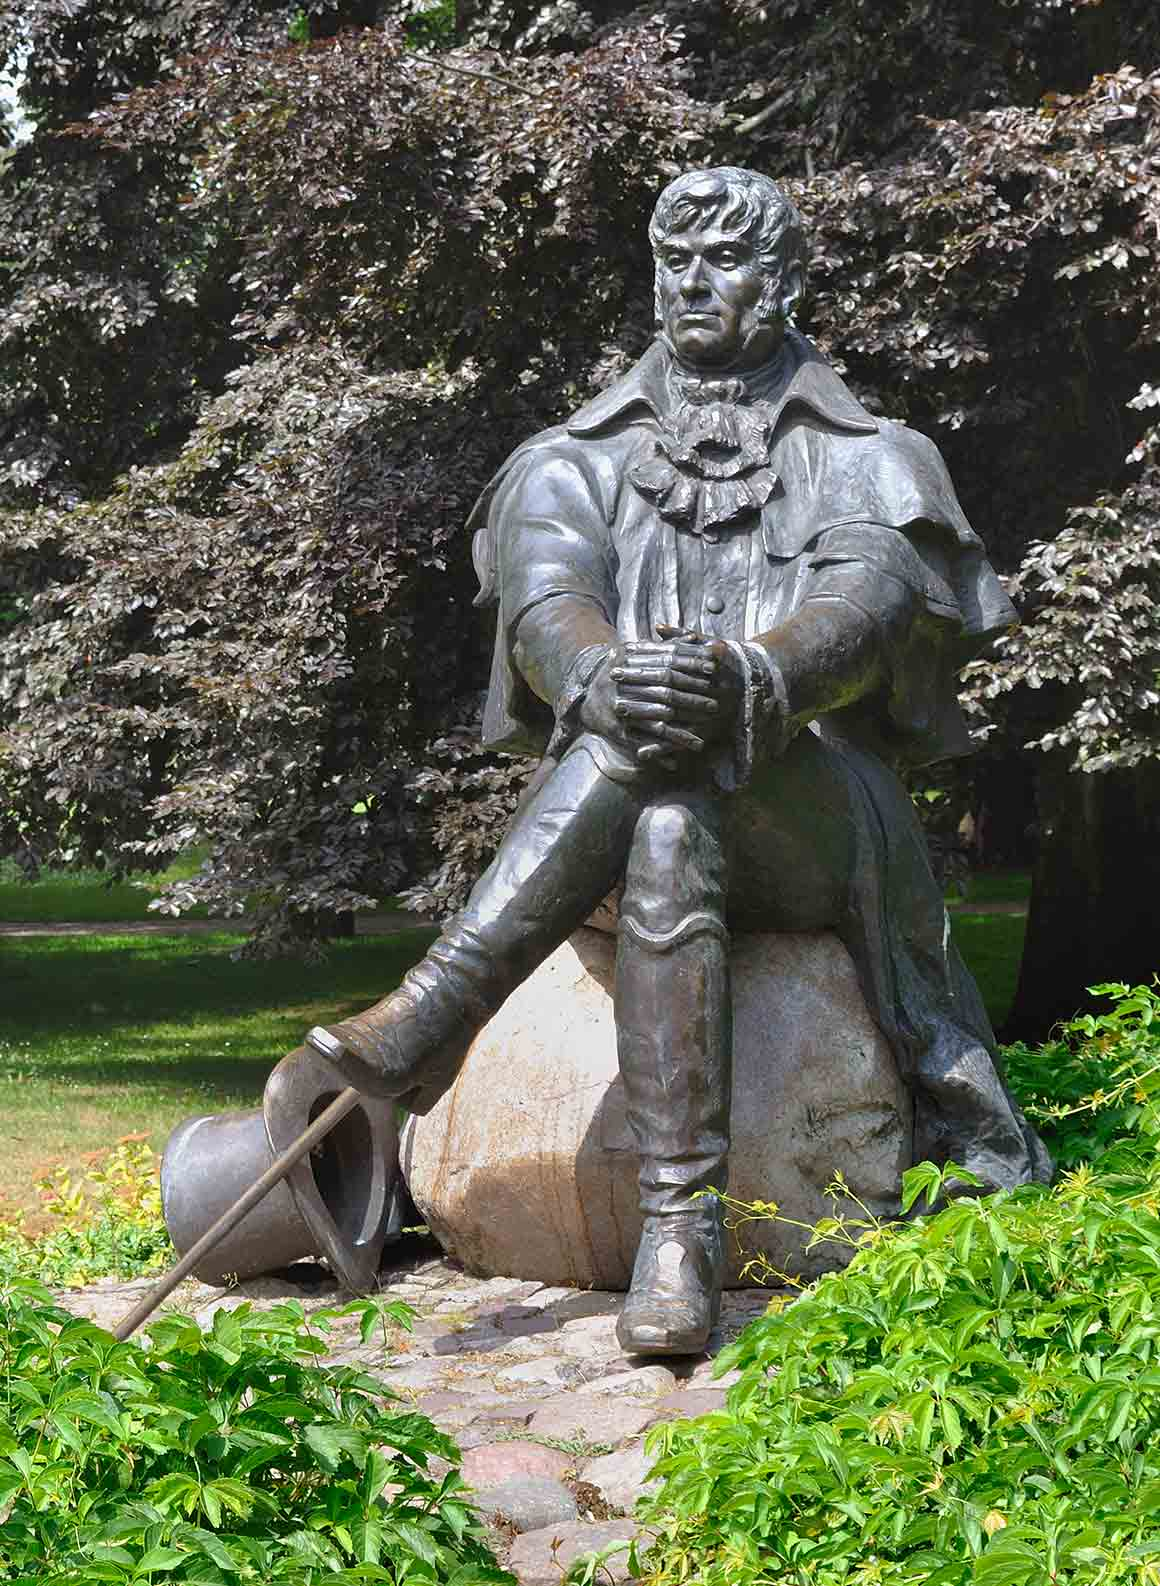 Statue of Jean Georg Haffner in Sopot